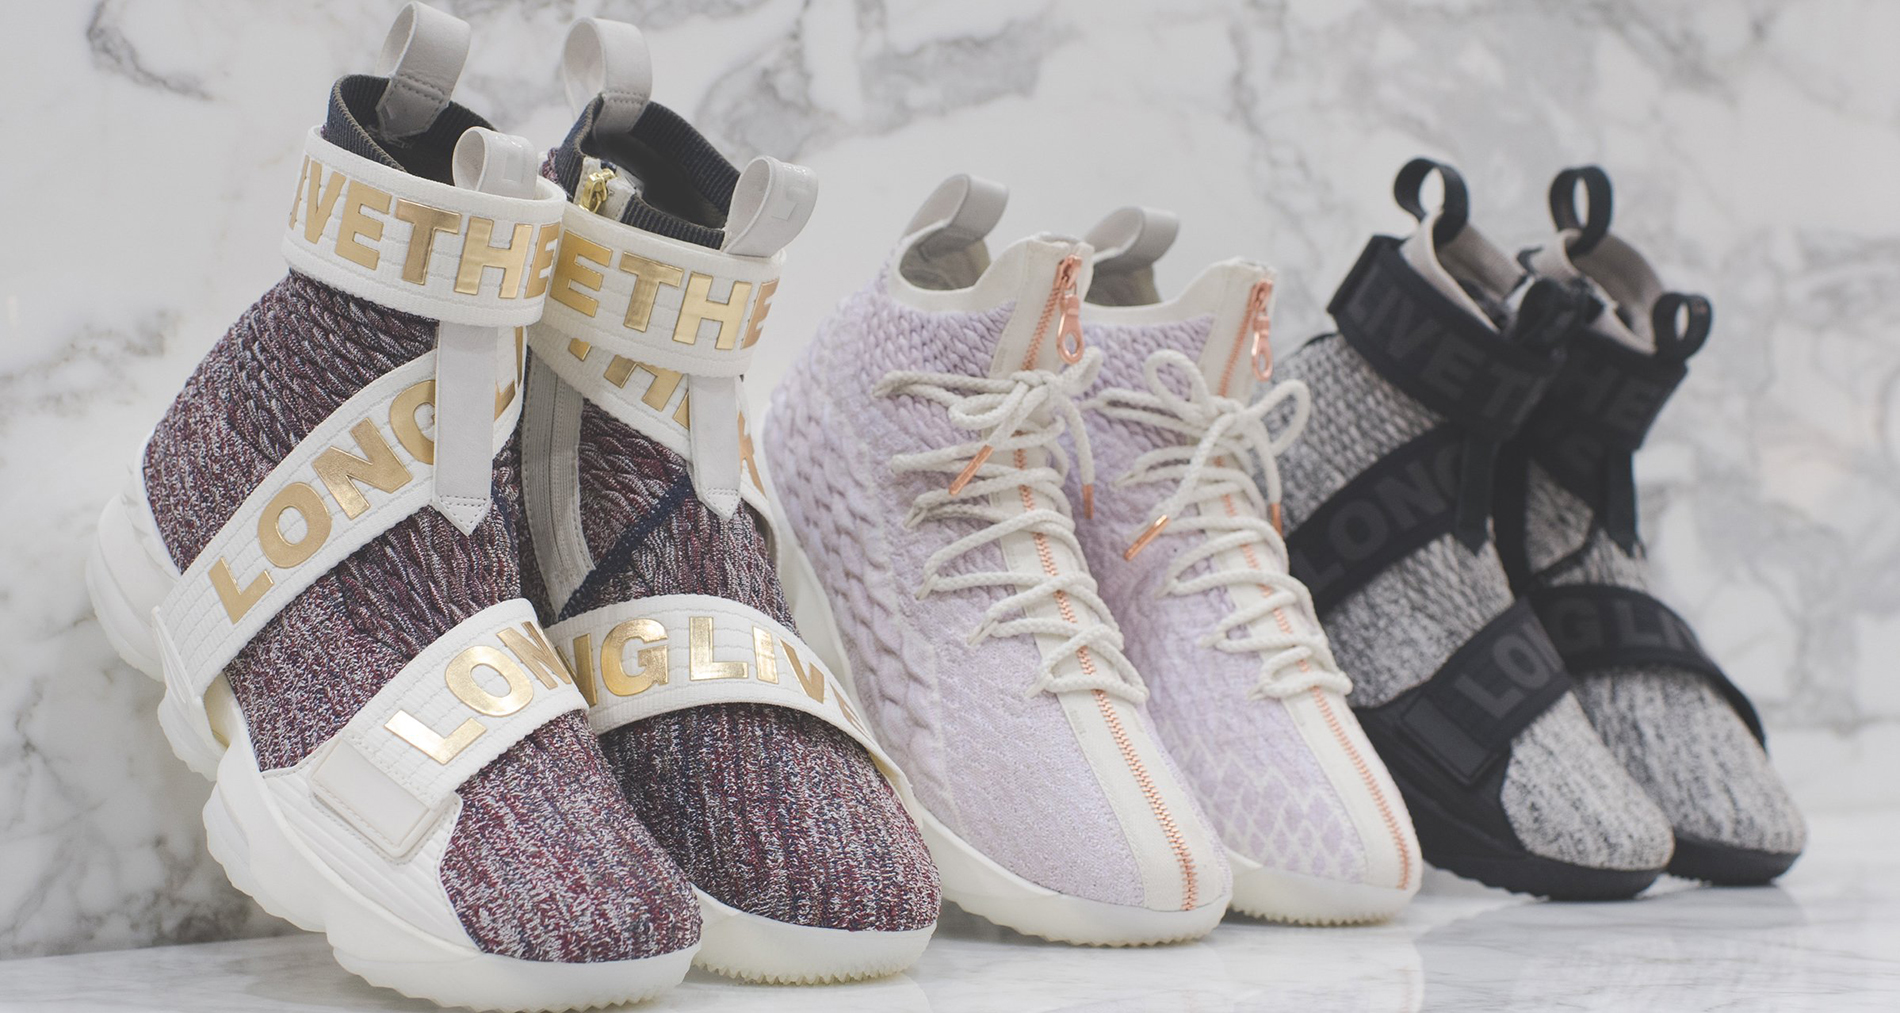 kith x nike lebron 15 quotlong live the kingquot collection